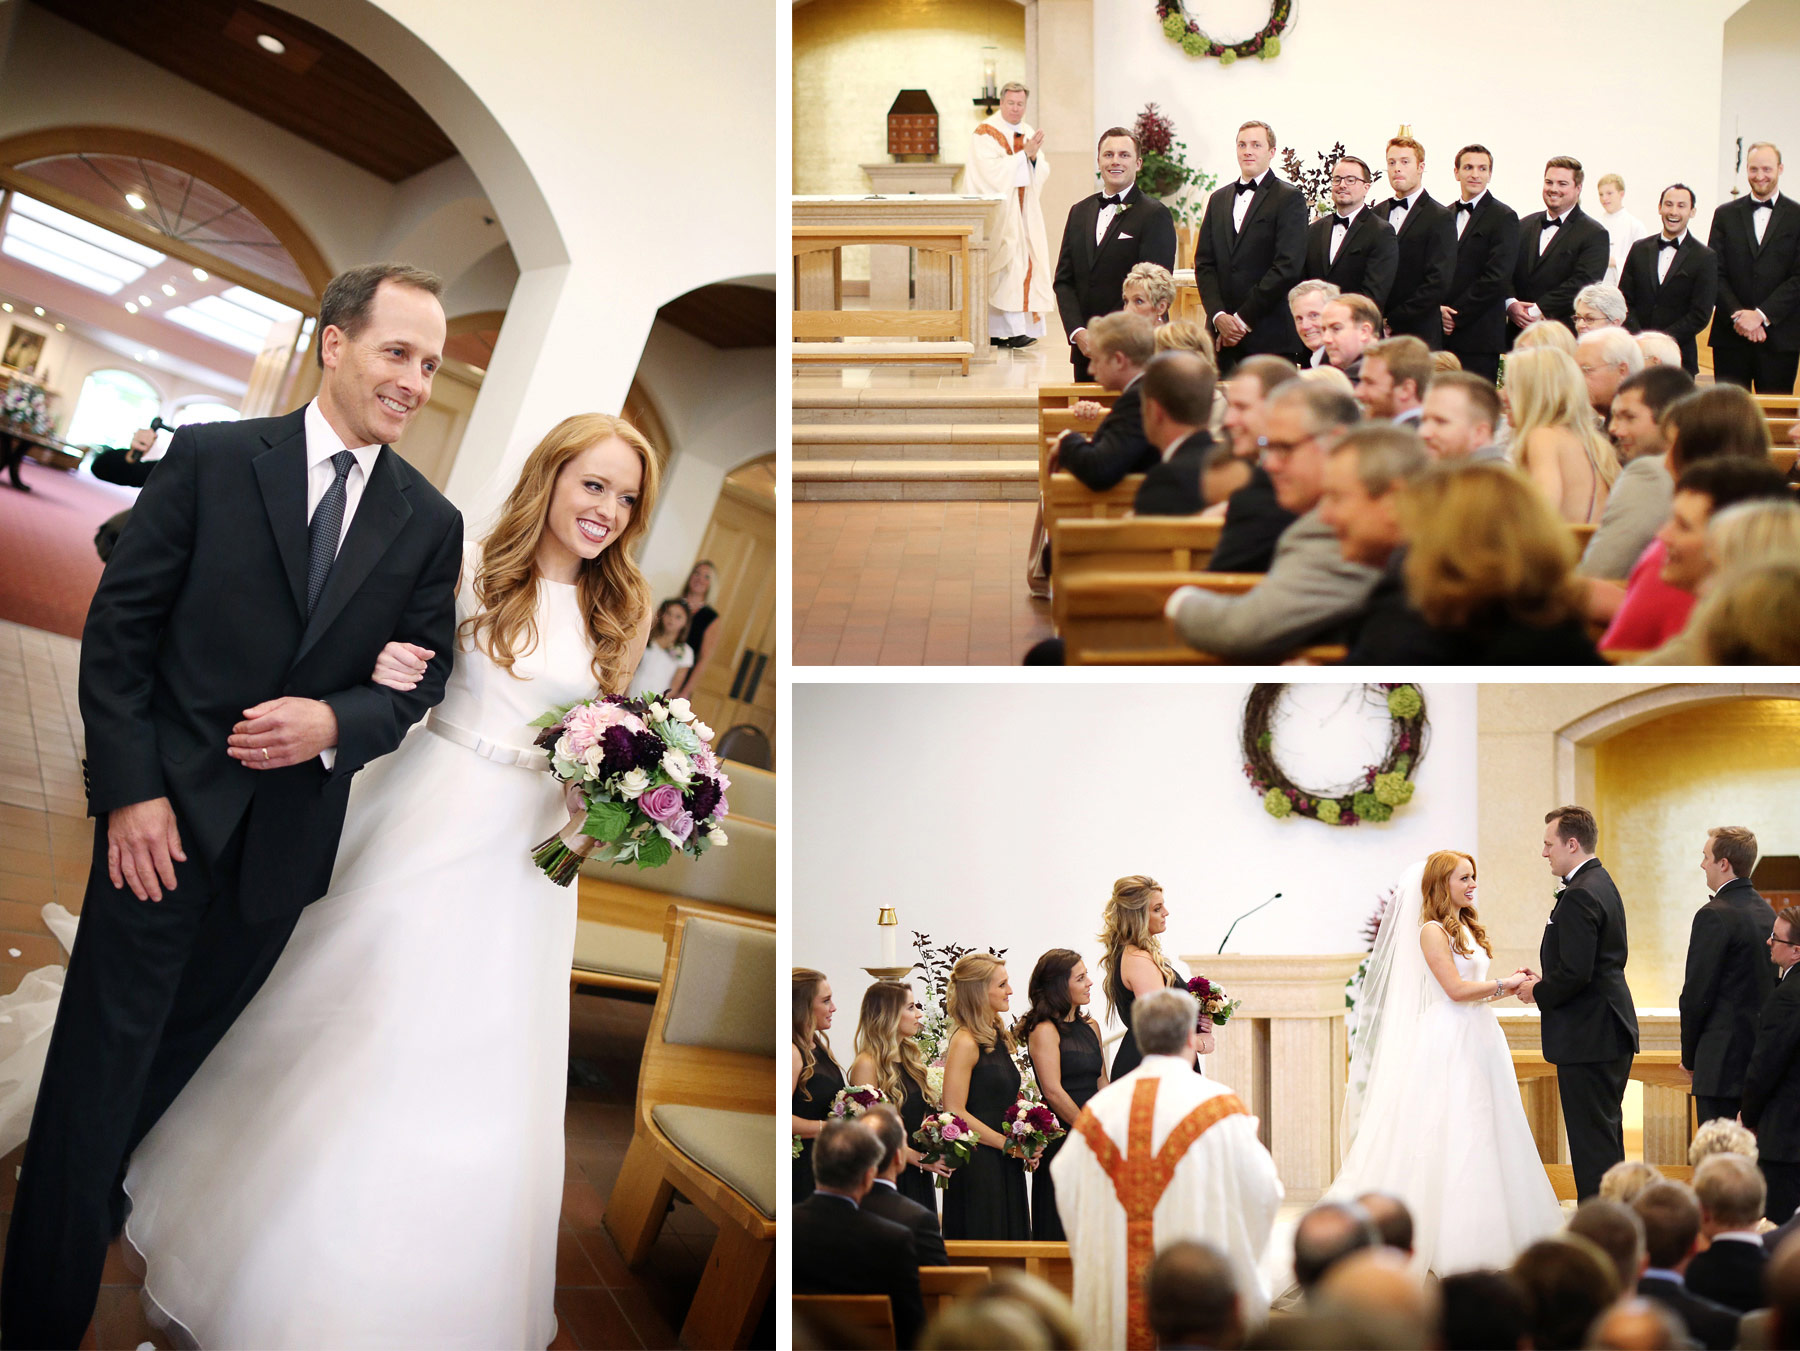 13-Minneapolis-Minnesota-Wedding-Photographer-by-Andrew-Vick-Photography-Fall-Autumn-Our-Lady-of-Grace-Catholic-Church-Ceremony-Bride-Groom-Bridesmaids-Groomsmen-Bridal-Party-Father-Parents-Processional-Vows-Kristy-and-Jack.jpg